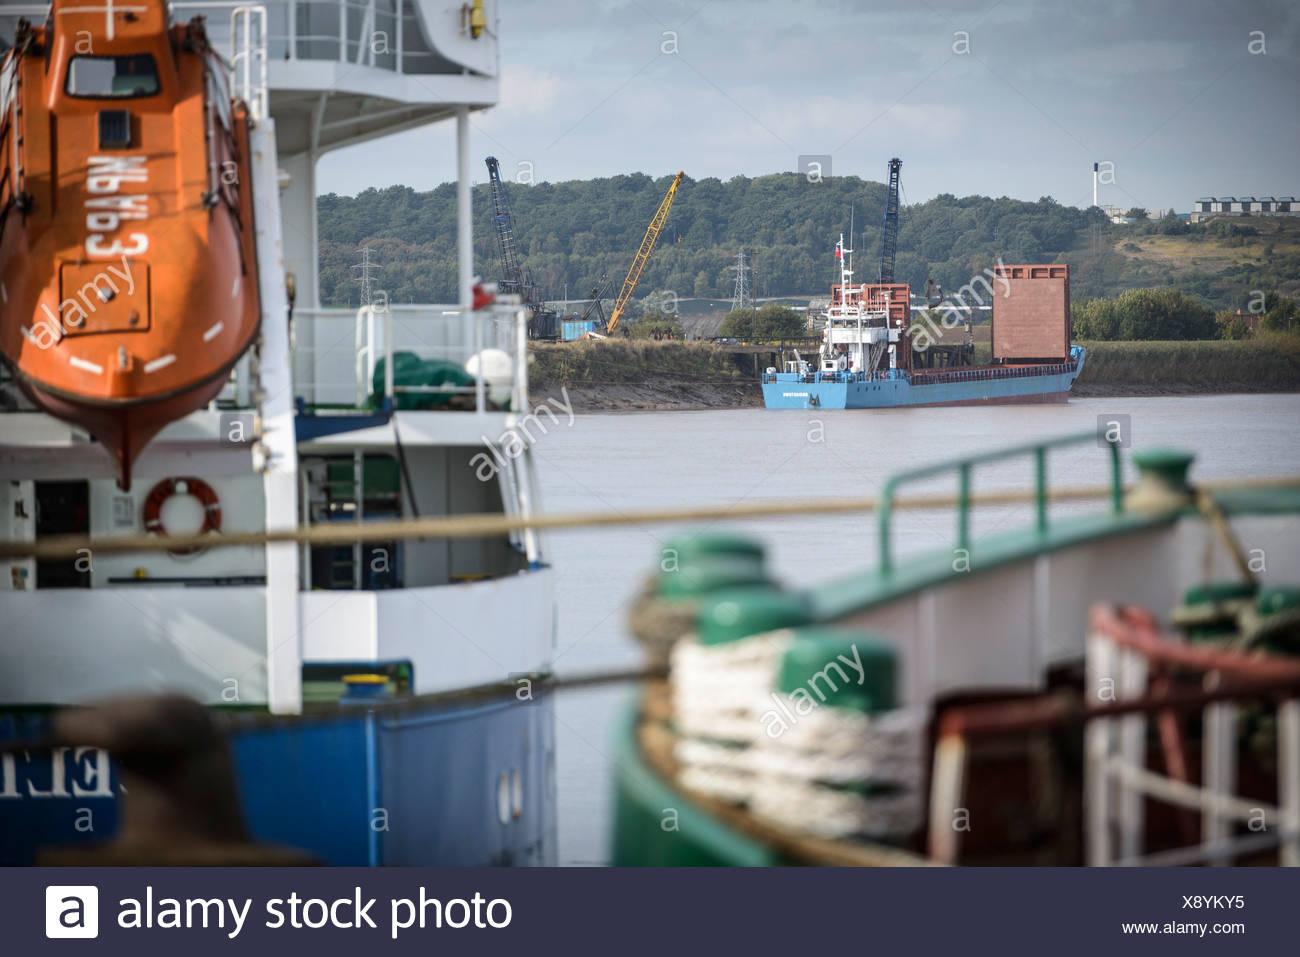 Small bulk load ship on river, view from port - Stock Image